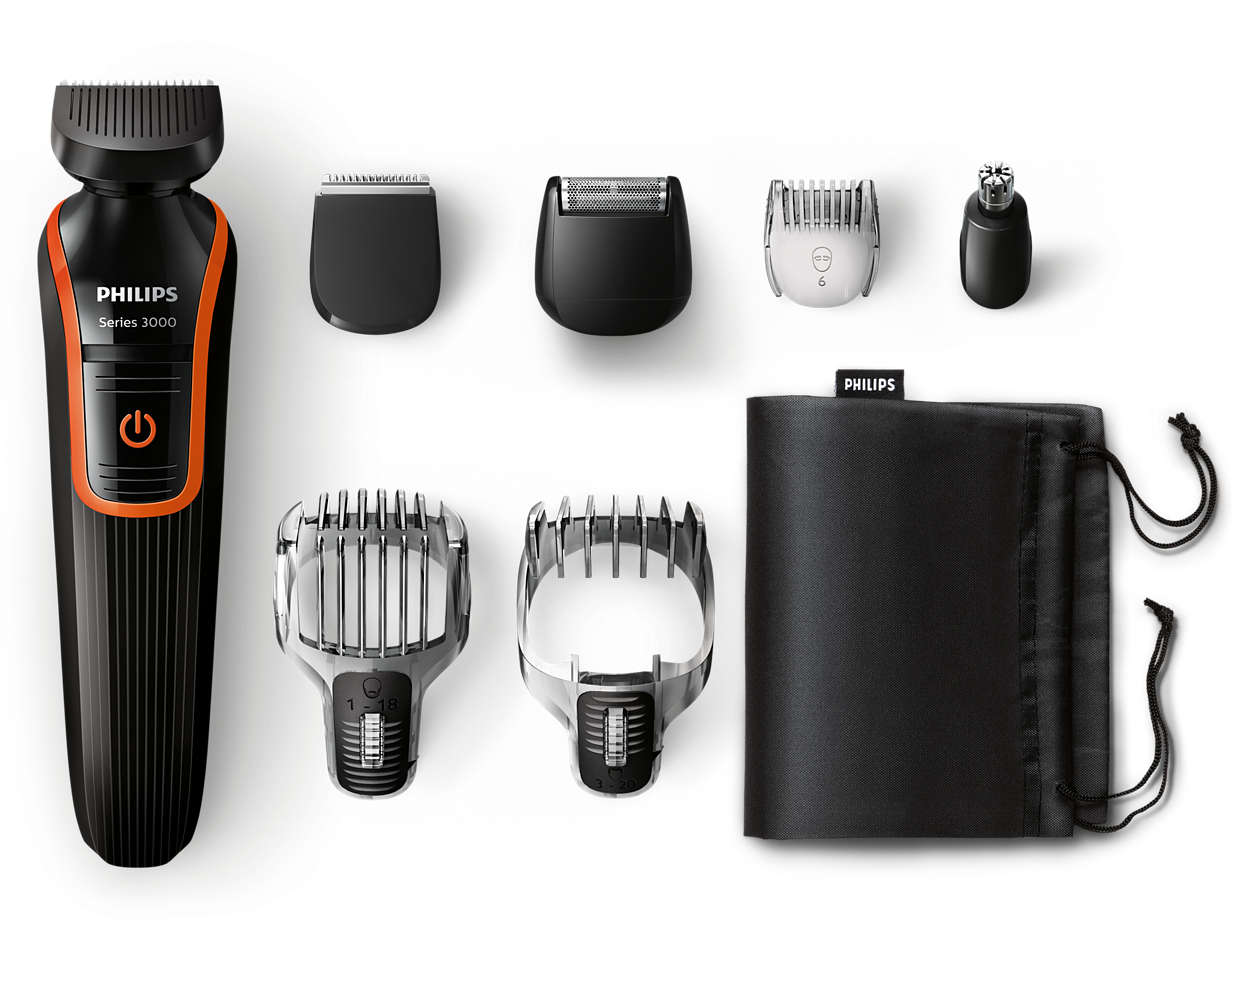 multigroom series 3000 7 in 1 beard hair trimmer qg3340 16 philips. Black Bedroom Furniture Sets. Home Design Ideas